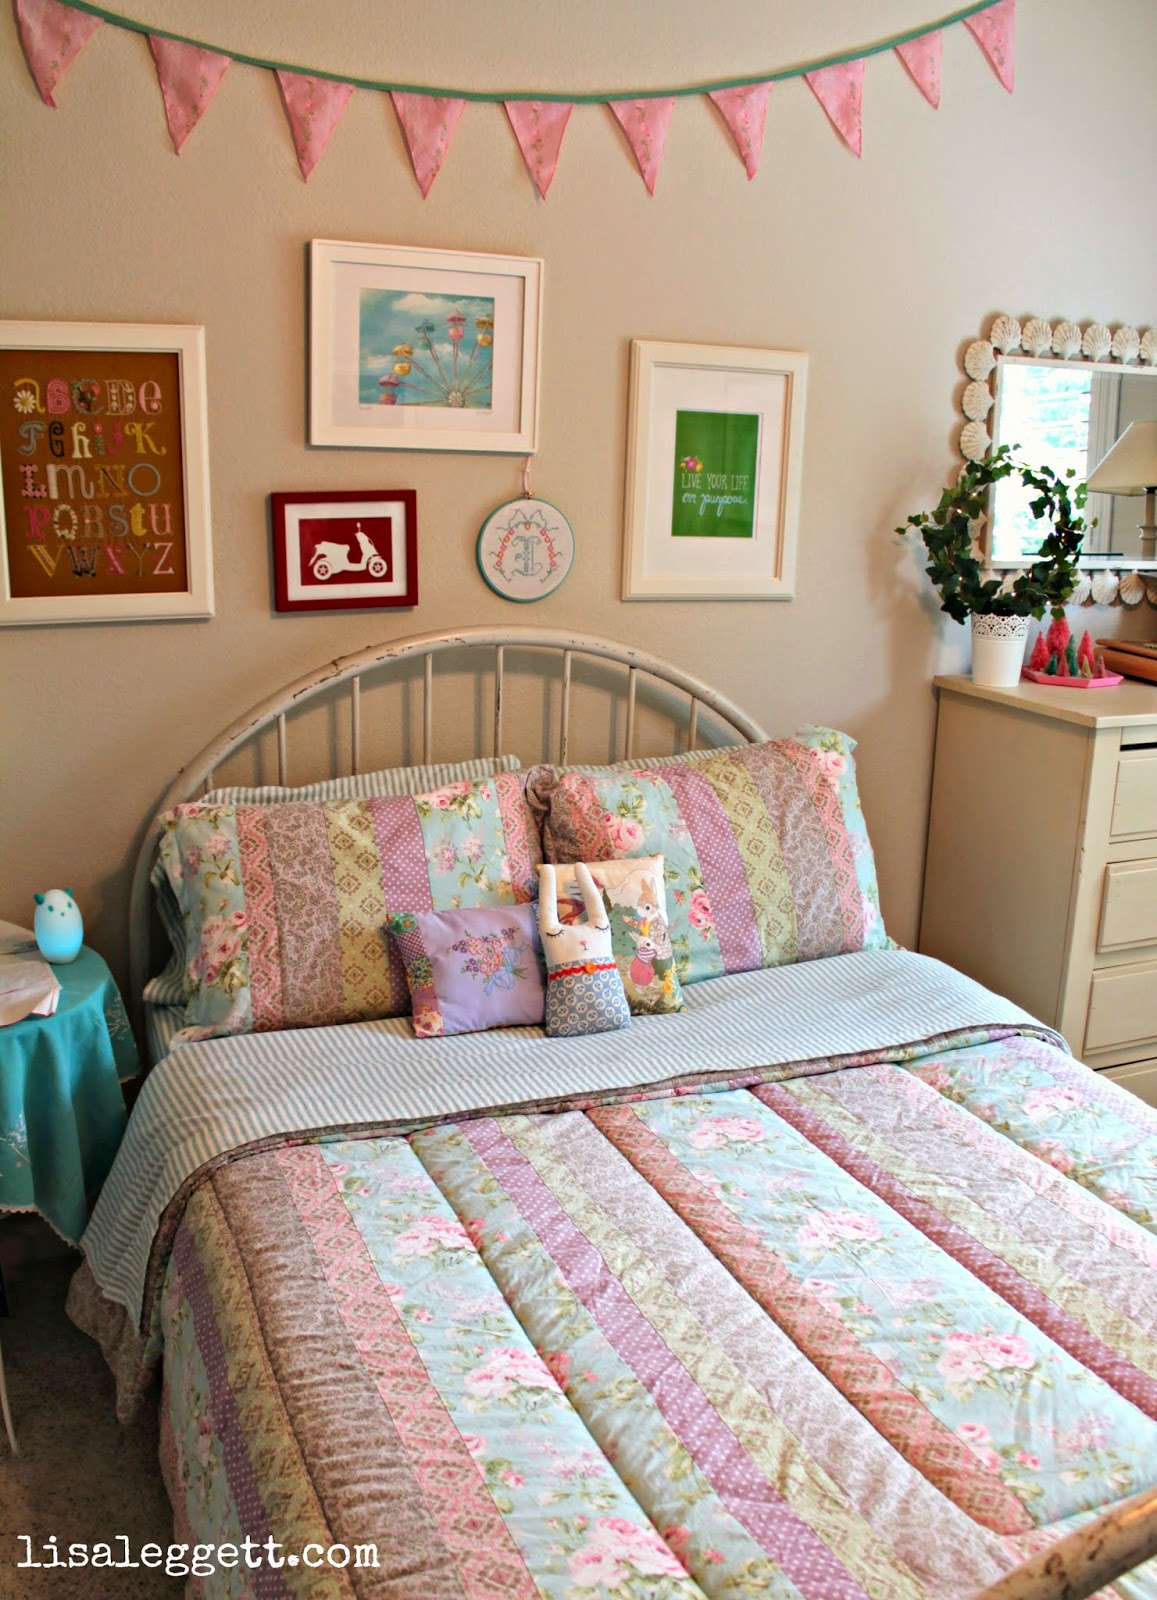 Spring in the Guest room by Lisa Leggett